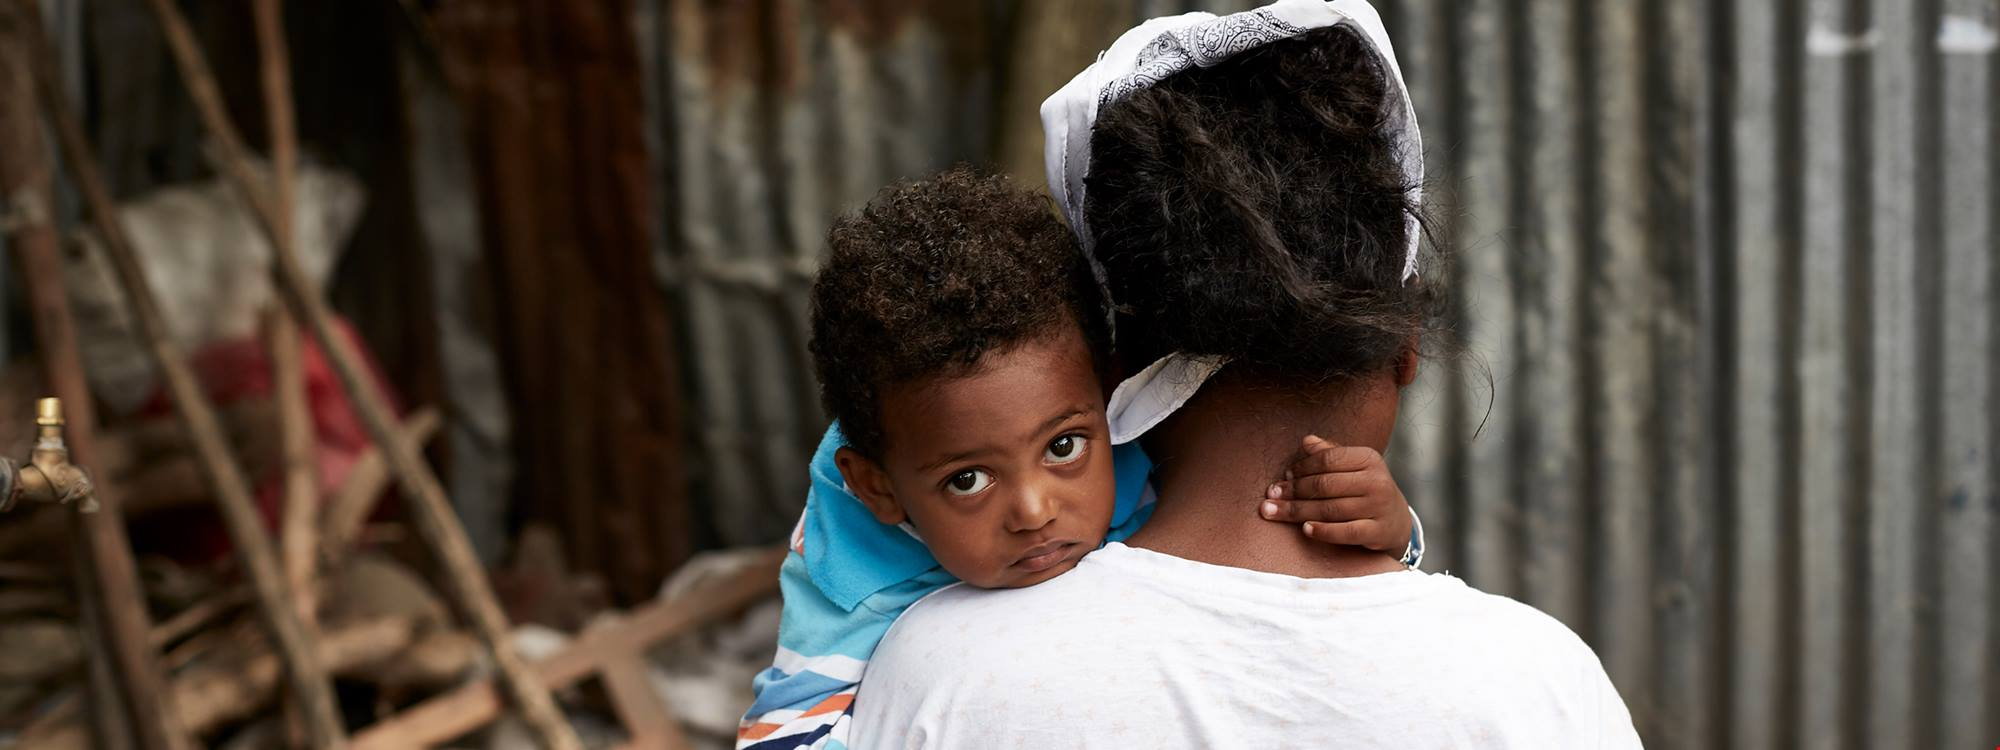 Better nutrition for low-income families in developing countries